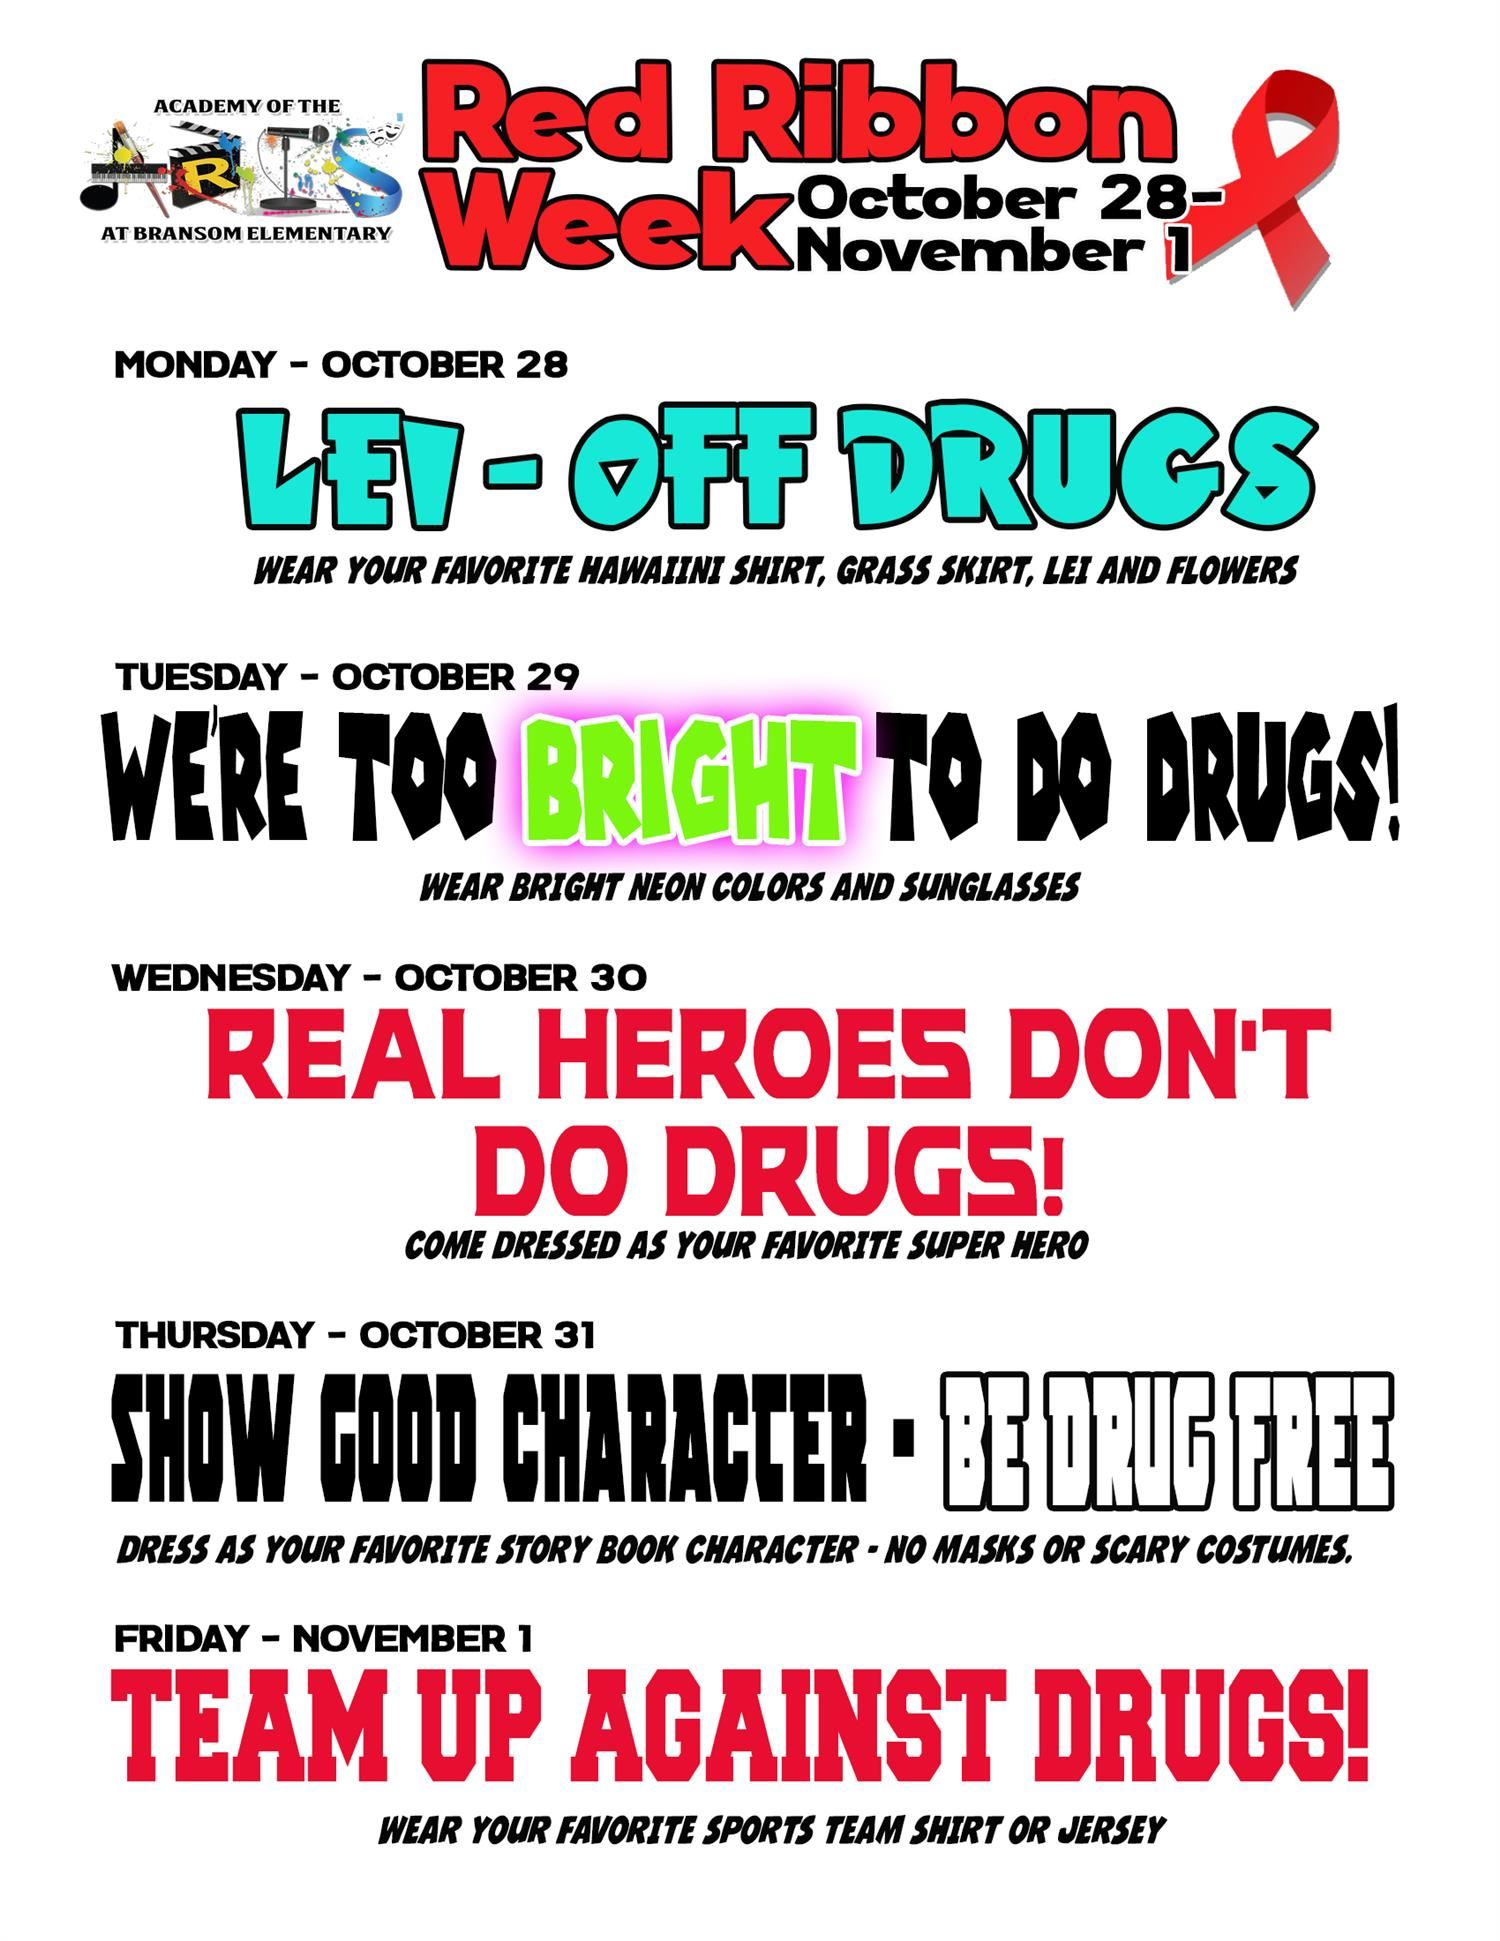 Red Ribbon instructions for the week